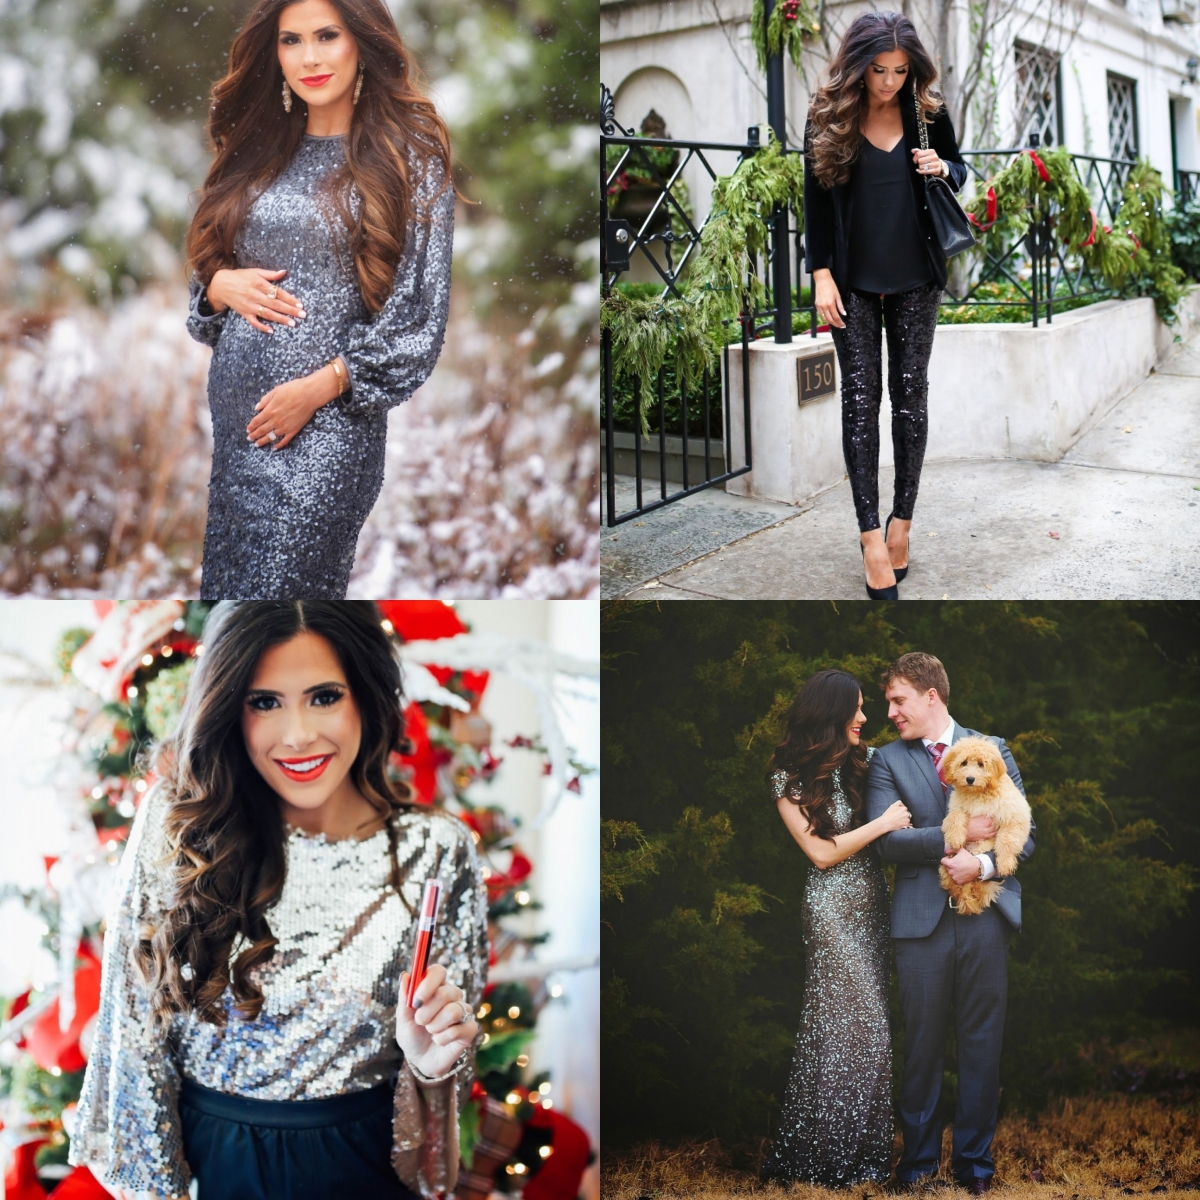 Sequin Leggings Outfit by popular US fashion blog, The Sweetest Thing: collage image of a woman wearing various sequin outfits.